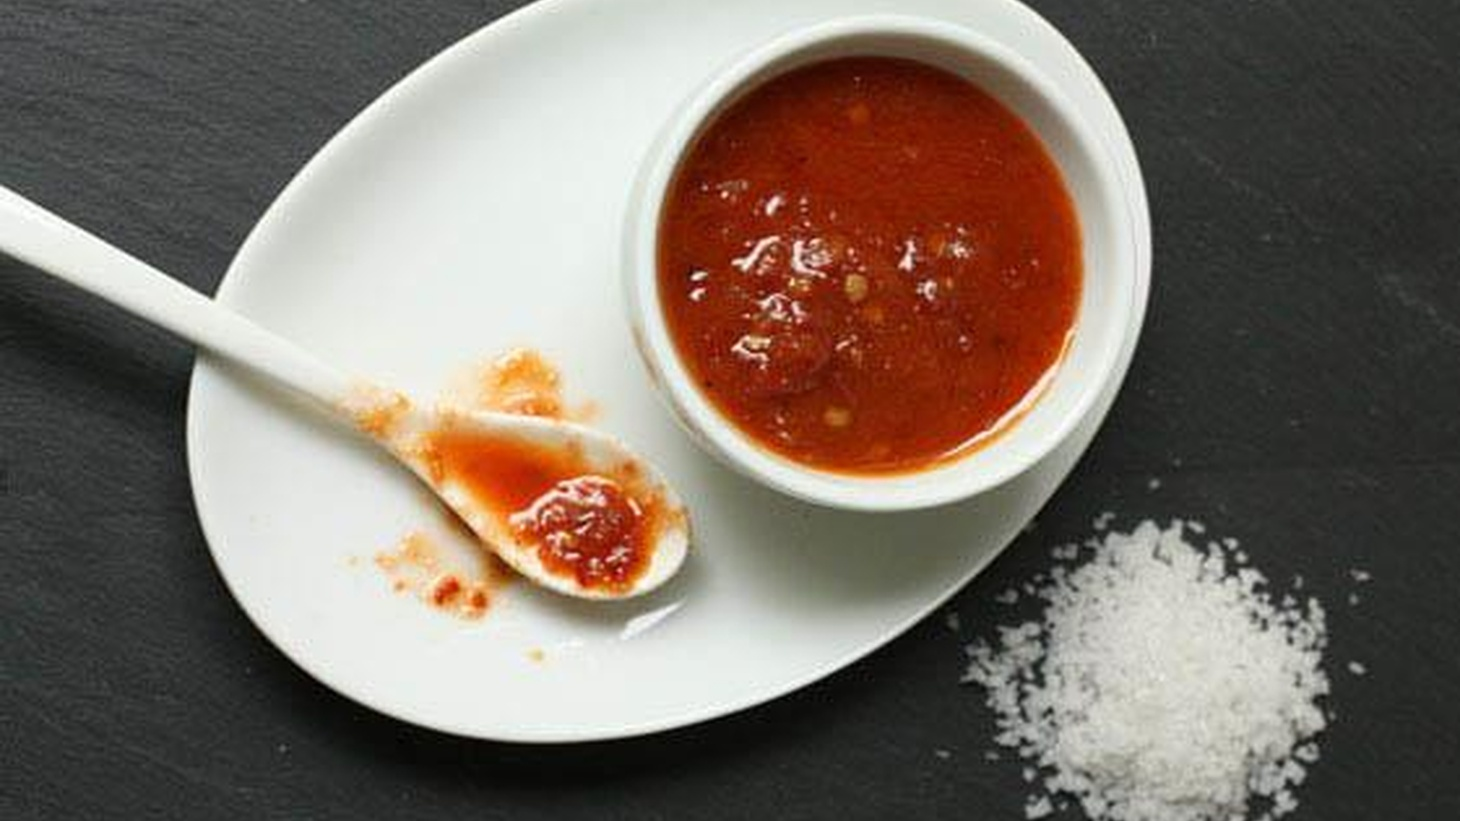 This week on Good Food with Evan Kleiman, we'll delve into the science behind boiling water. Plus the super-spicy piri piri pepper. And Jonathan Gold takes us to Tinga on La Brea.